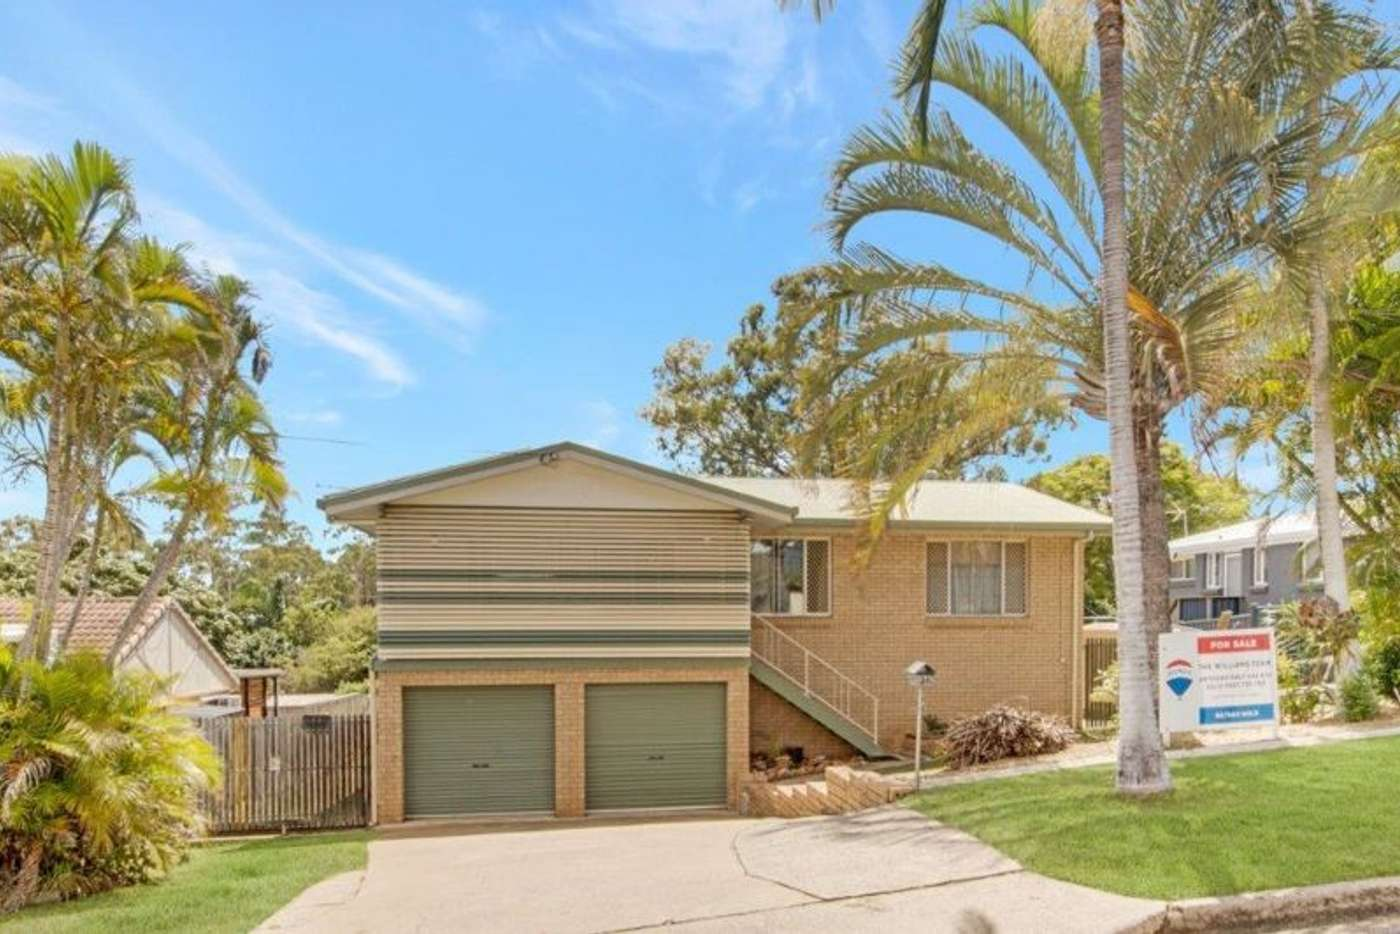 Main view of Homely house listing, 36 Jupiter Street, Telina QLD 4680